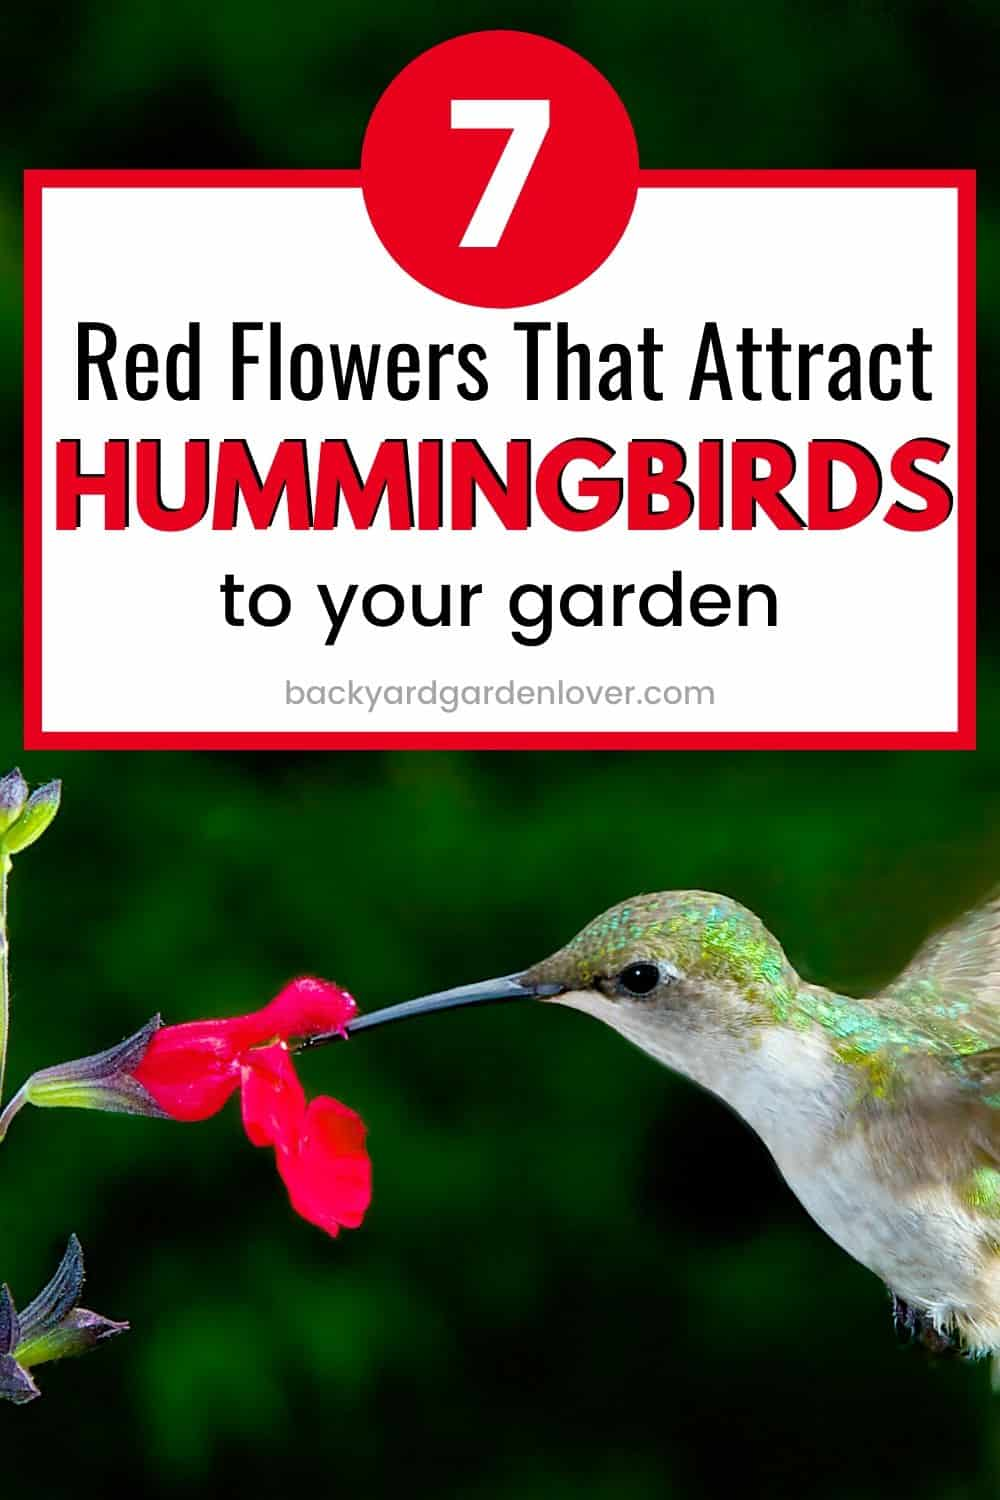 Red flowers that attract hummingbirds to your garden